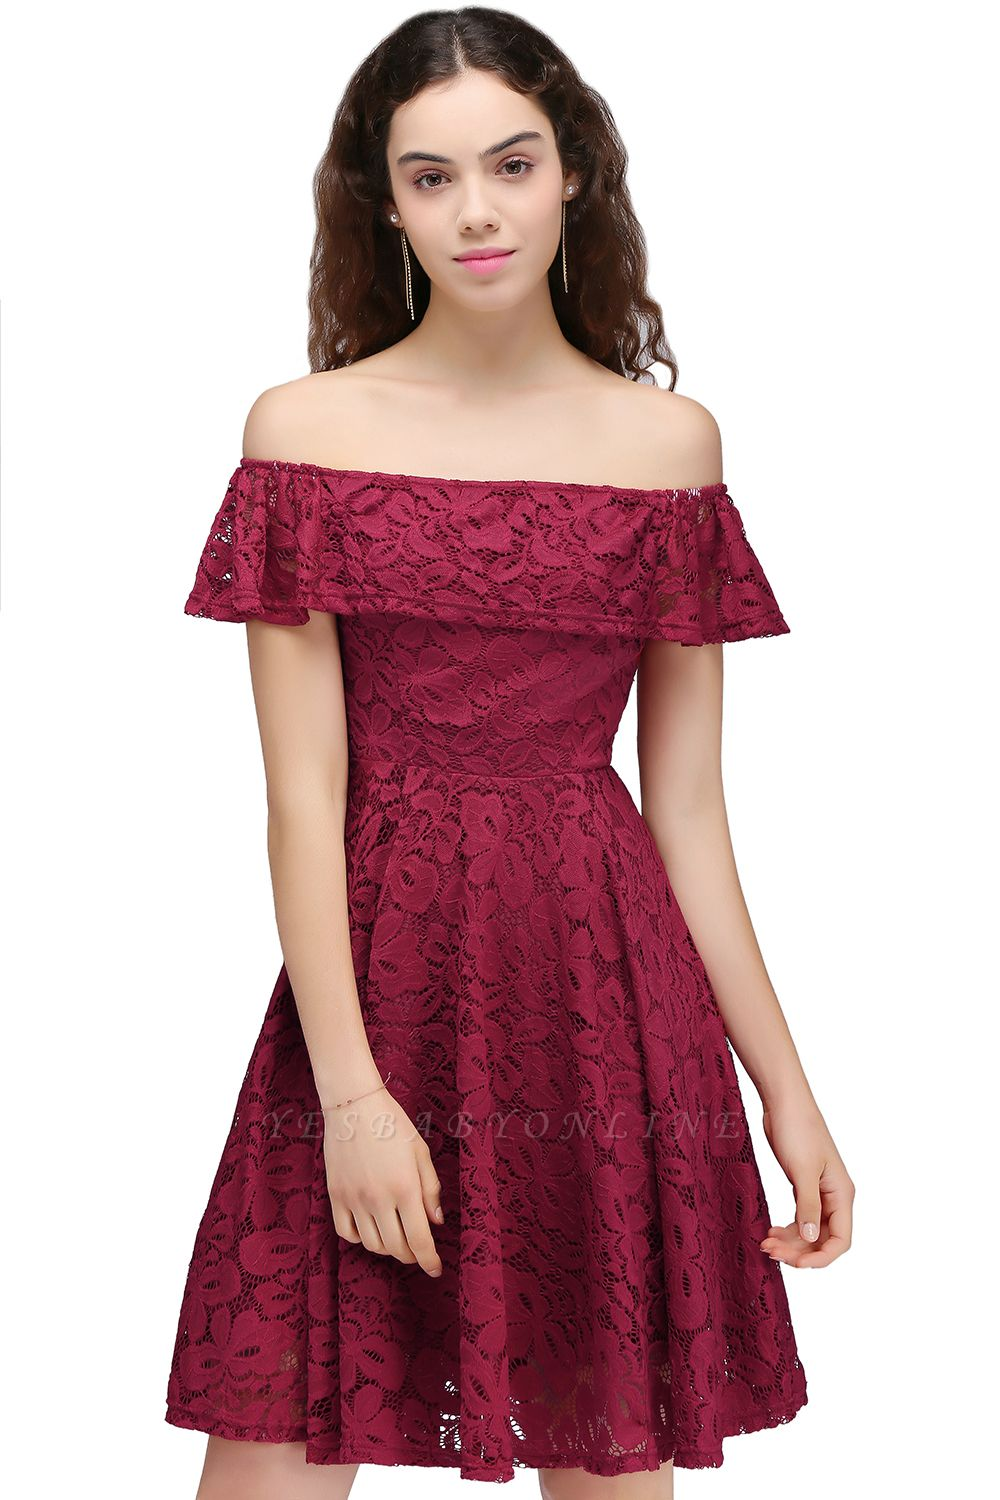 Cheap A-Line Off-the-shoulder Lace Burgundy Homecoming Dress in Stock